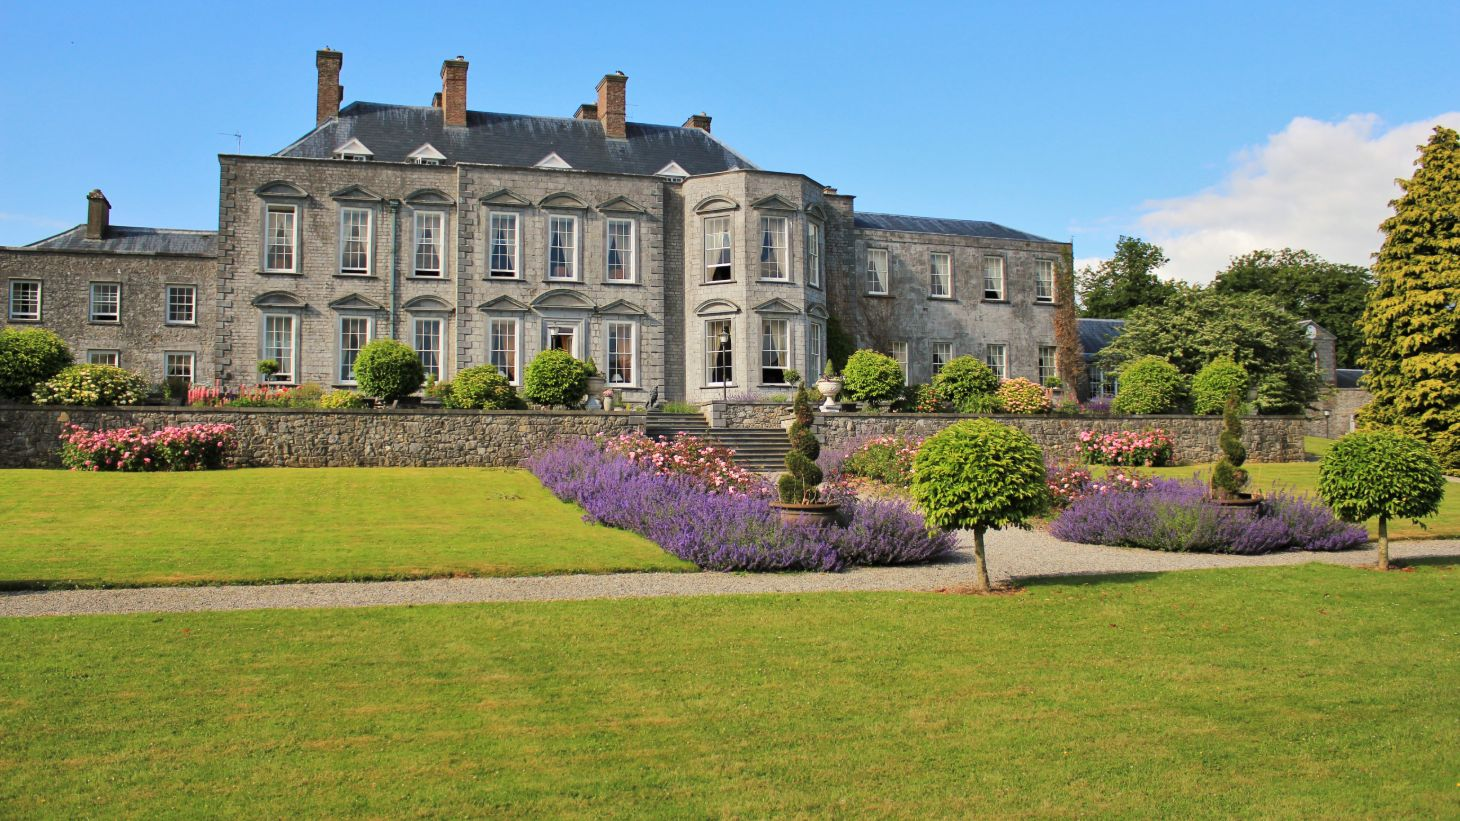 Enjoy the scenic gardens at Castle Durrow.